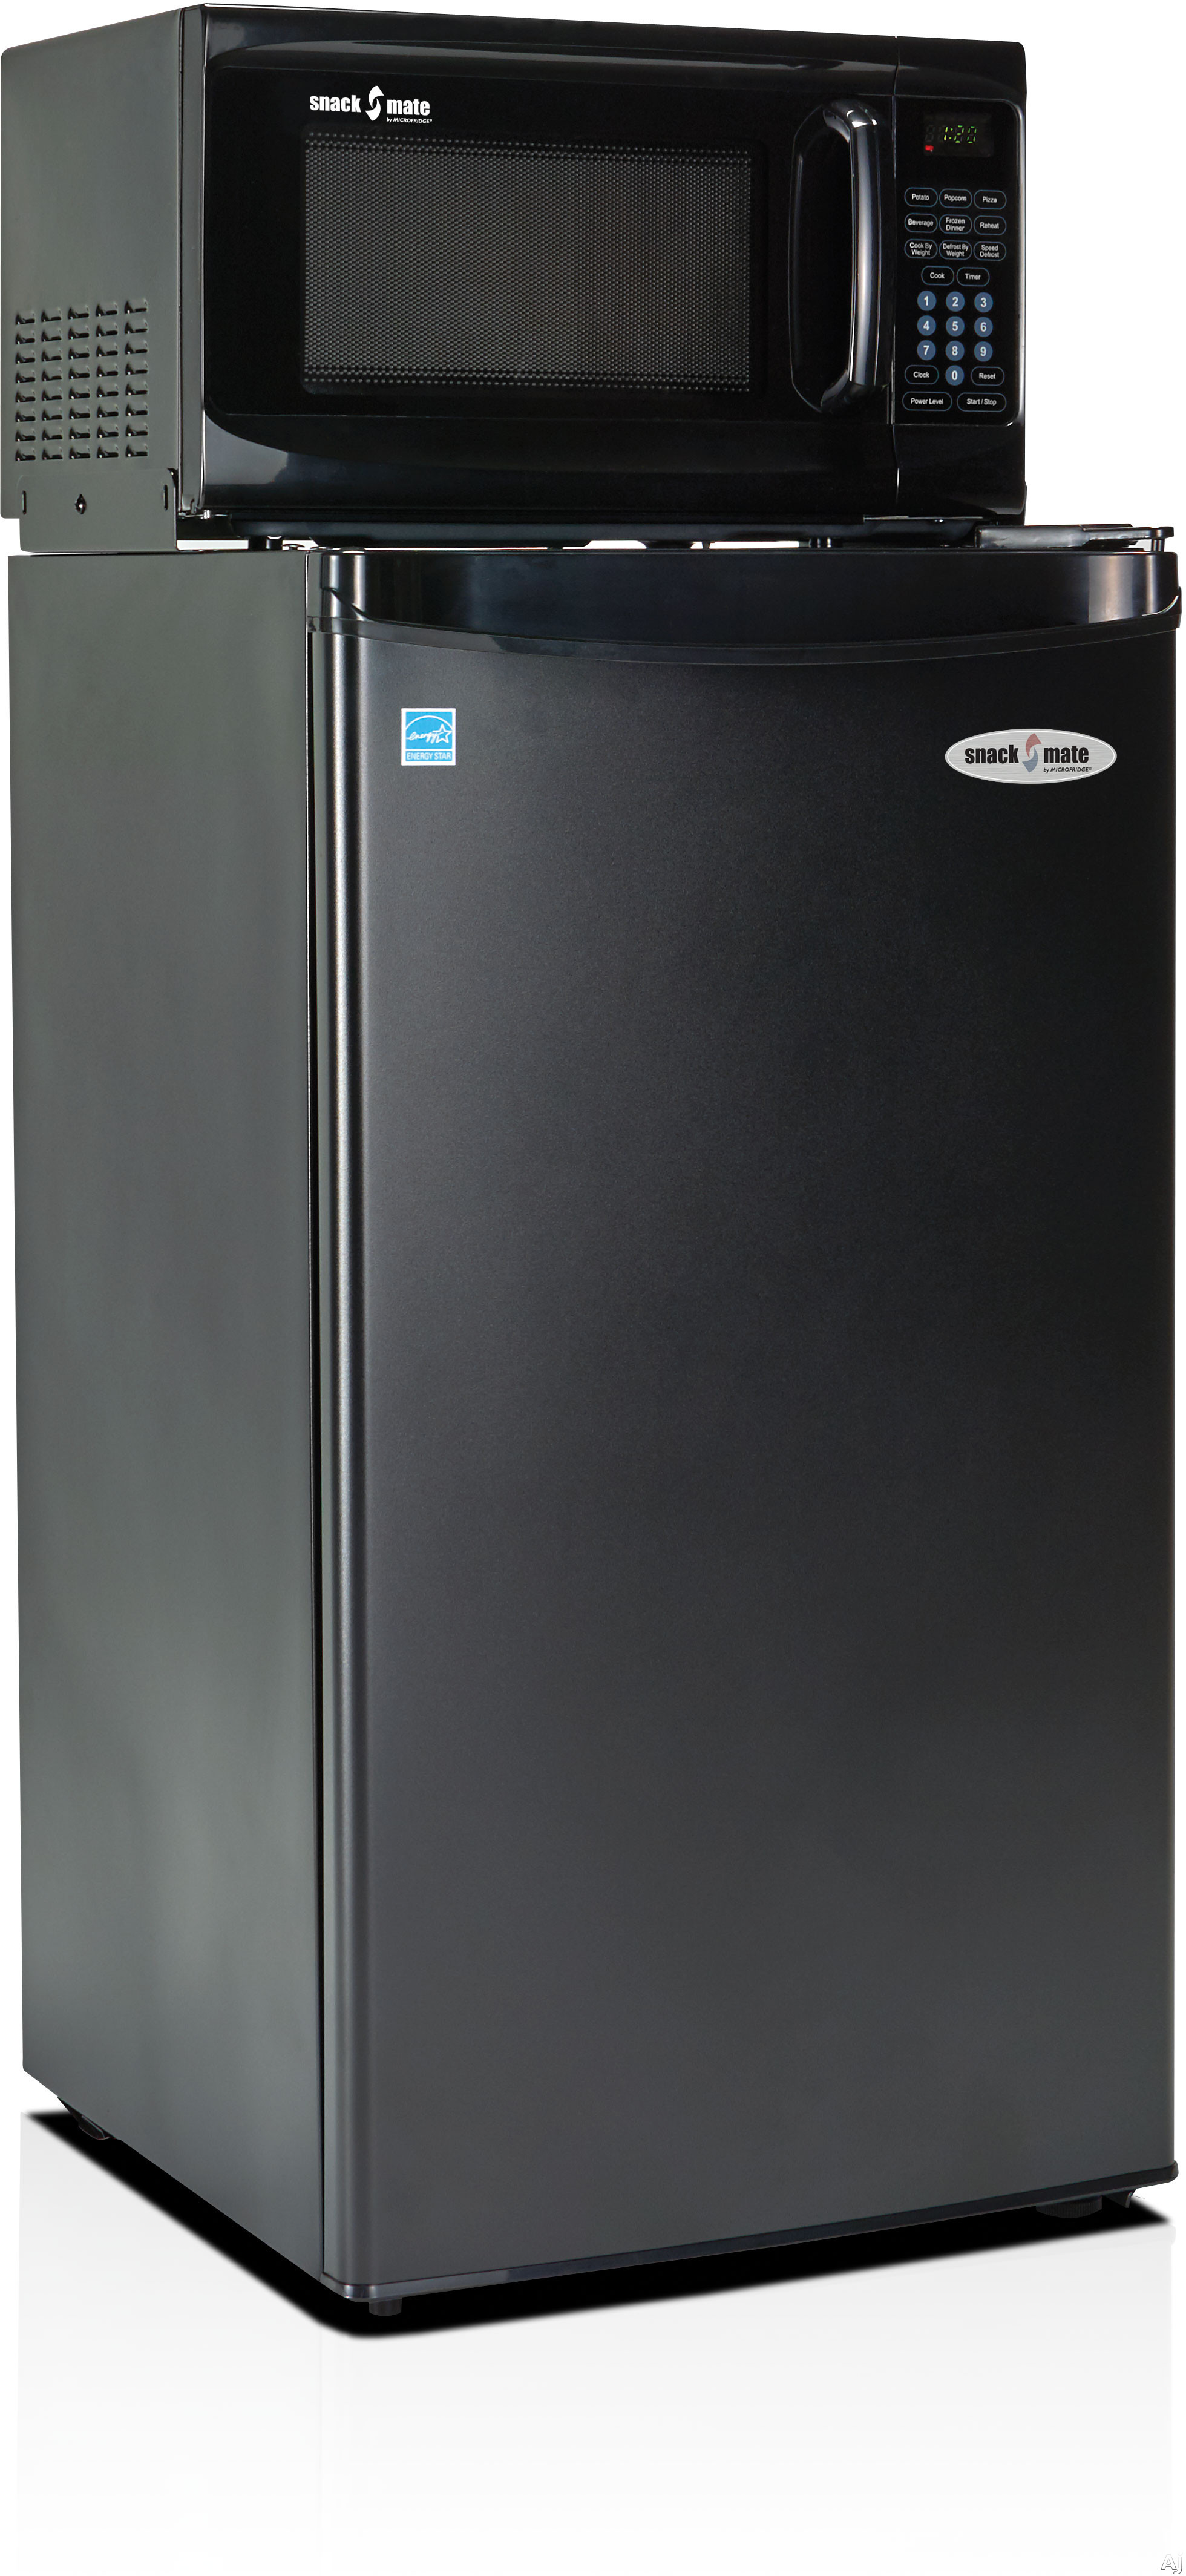 MicroFridge Snackmate Series 32SM4A7A1 3.2 cu. ft. Compact Refrigerator with 700 Watt Microwave, One-Plug-to-the-Wall Operations, 3 Shelves, CanStor Beverage Dispenser, 2-Liter Bottle Door Storage, ENERGY STAR and Ice Compartment